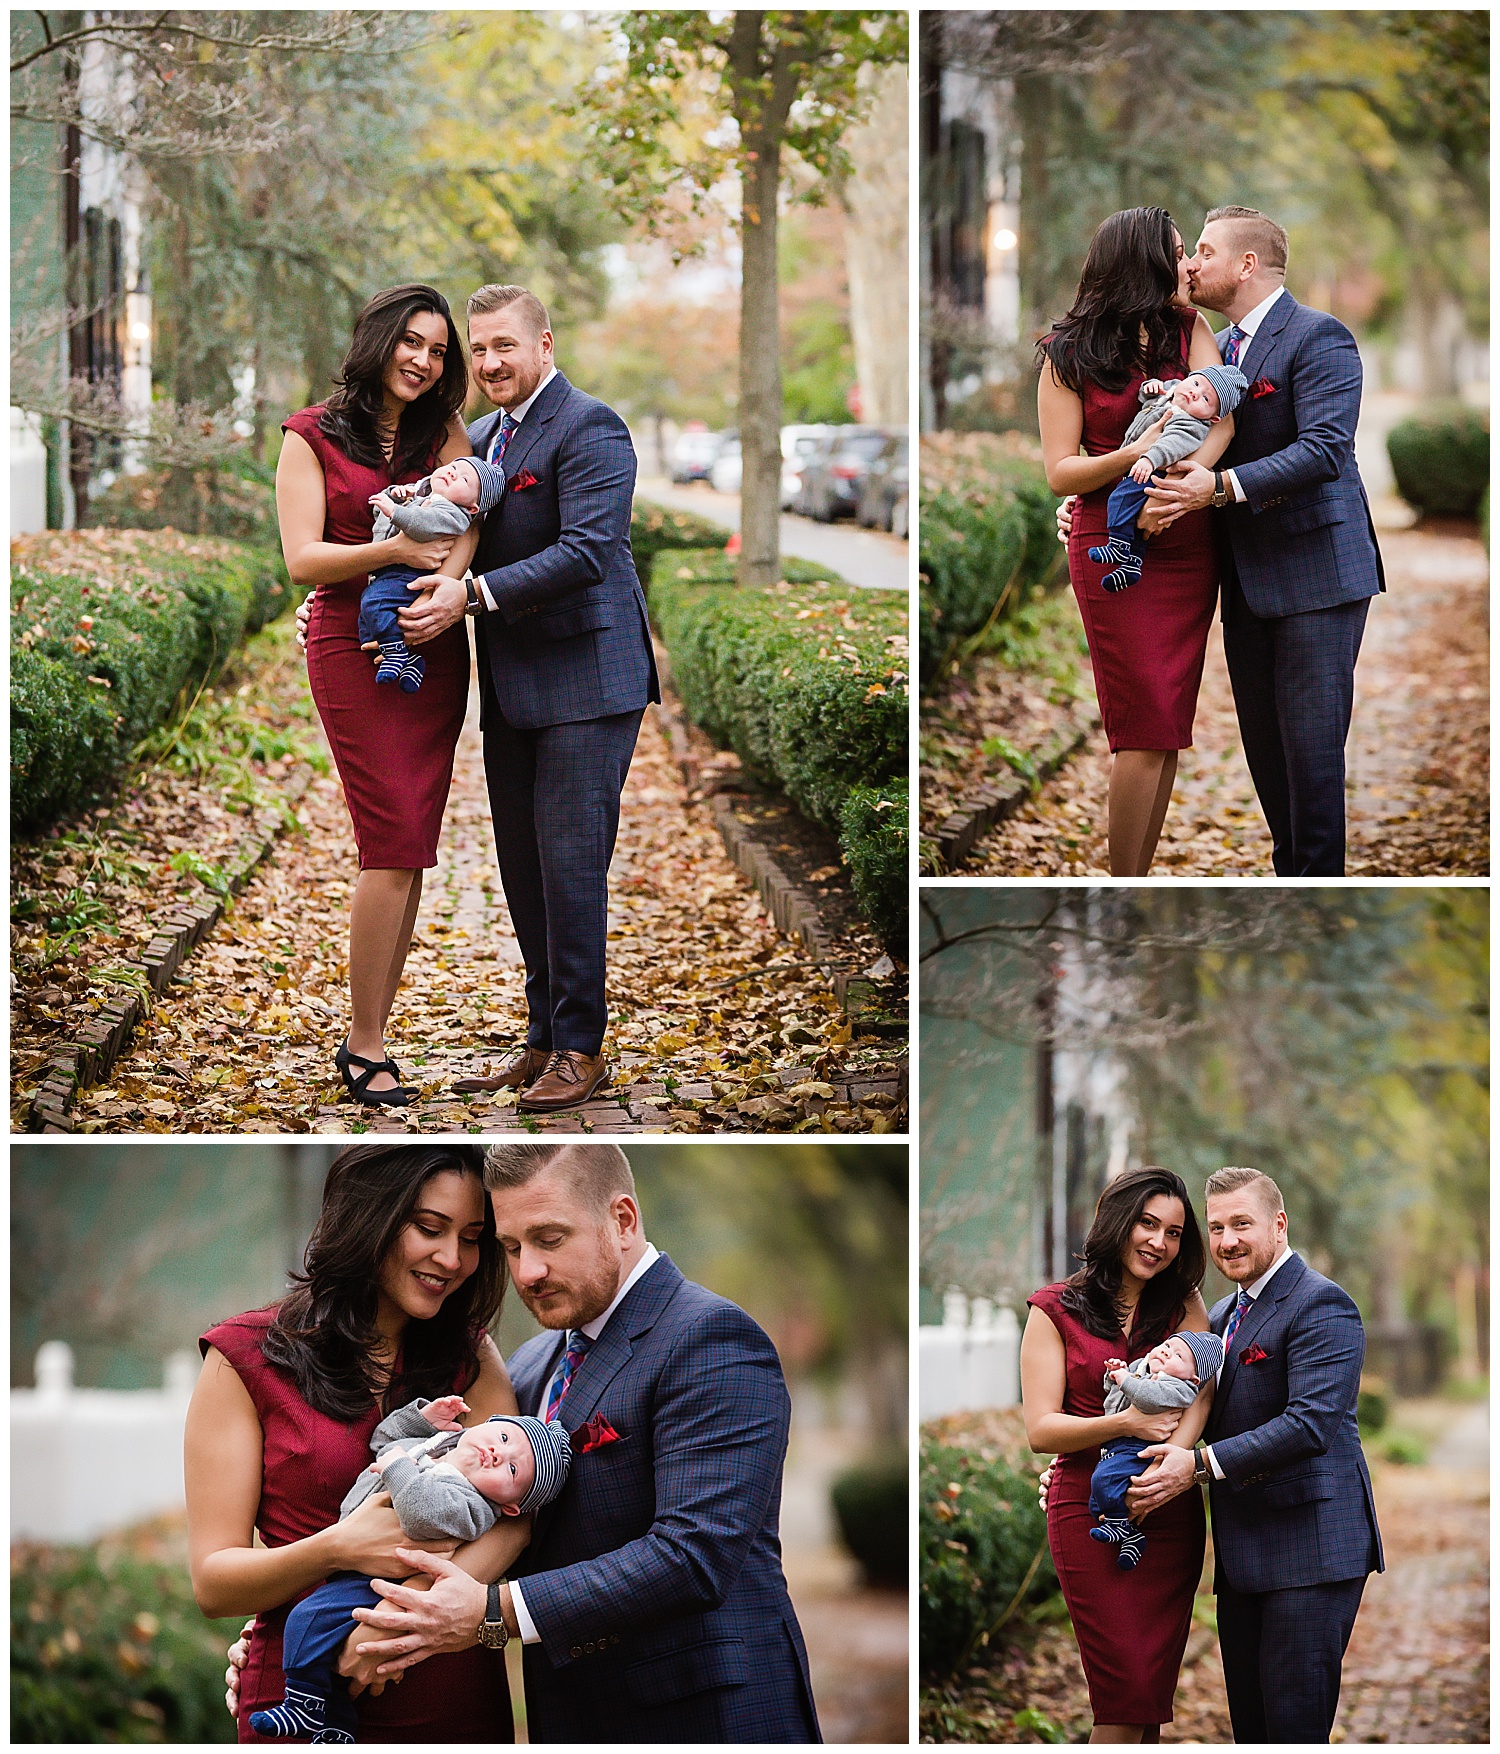 fall family photos in burlington new jersey with family in formal outfits on a brick walkway